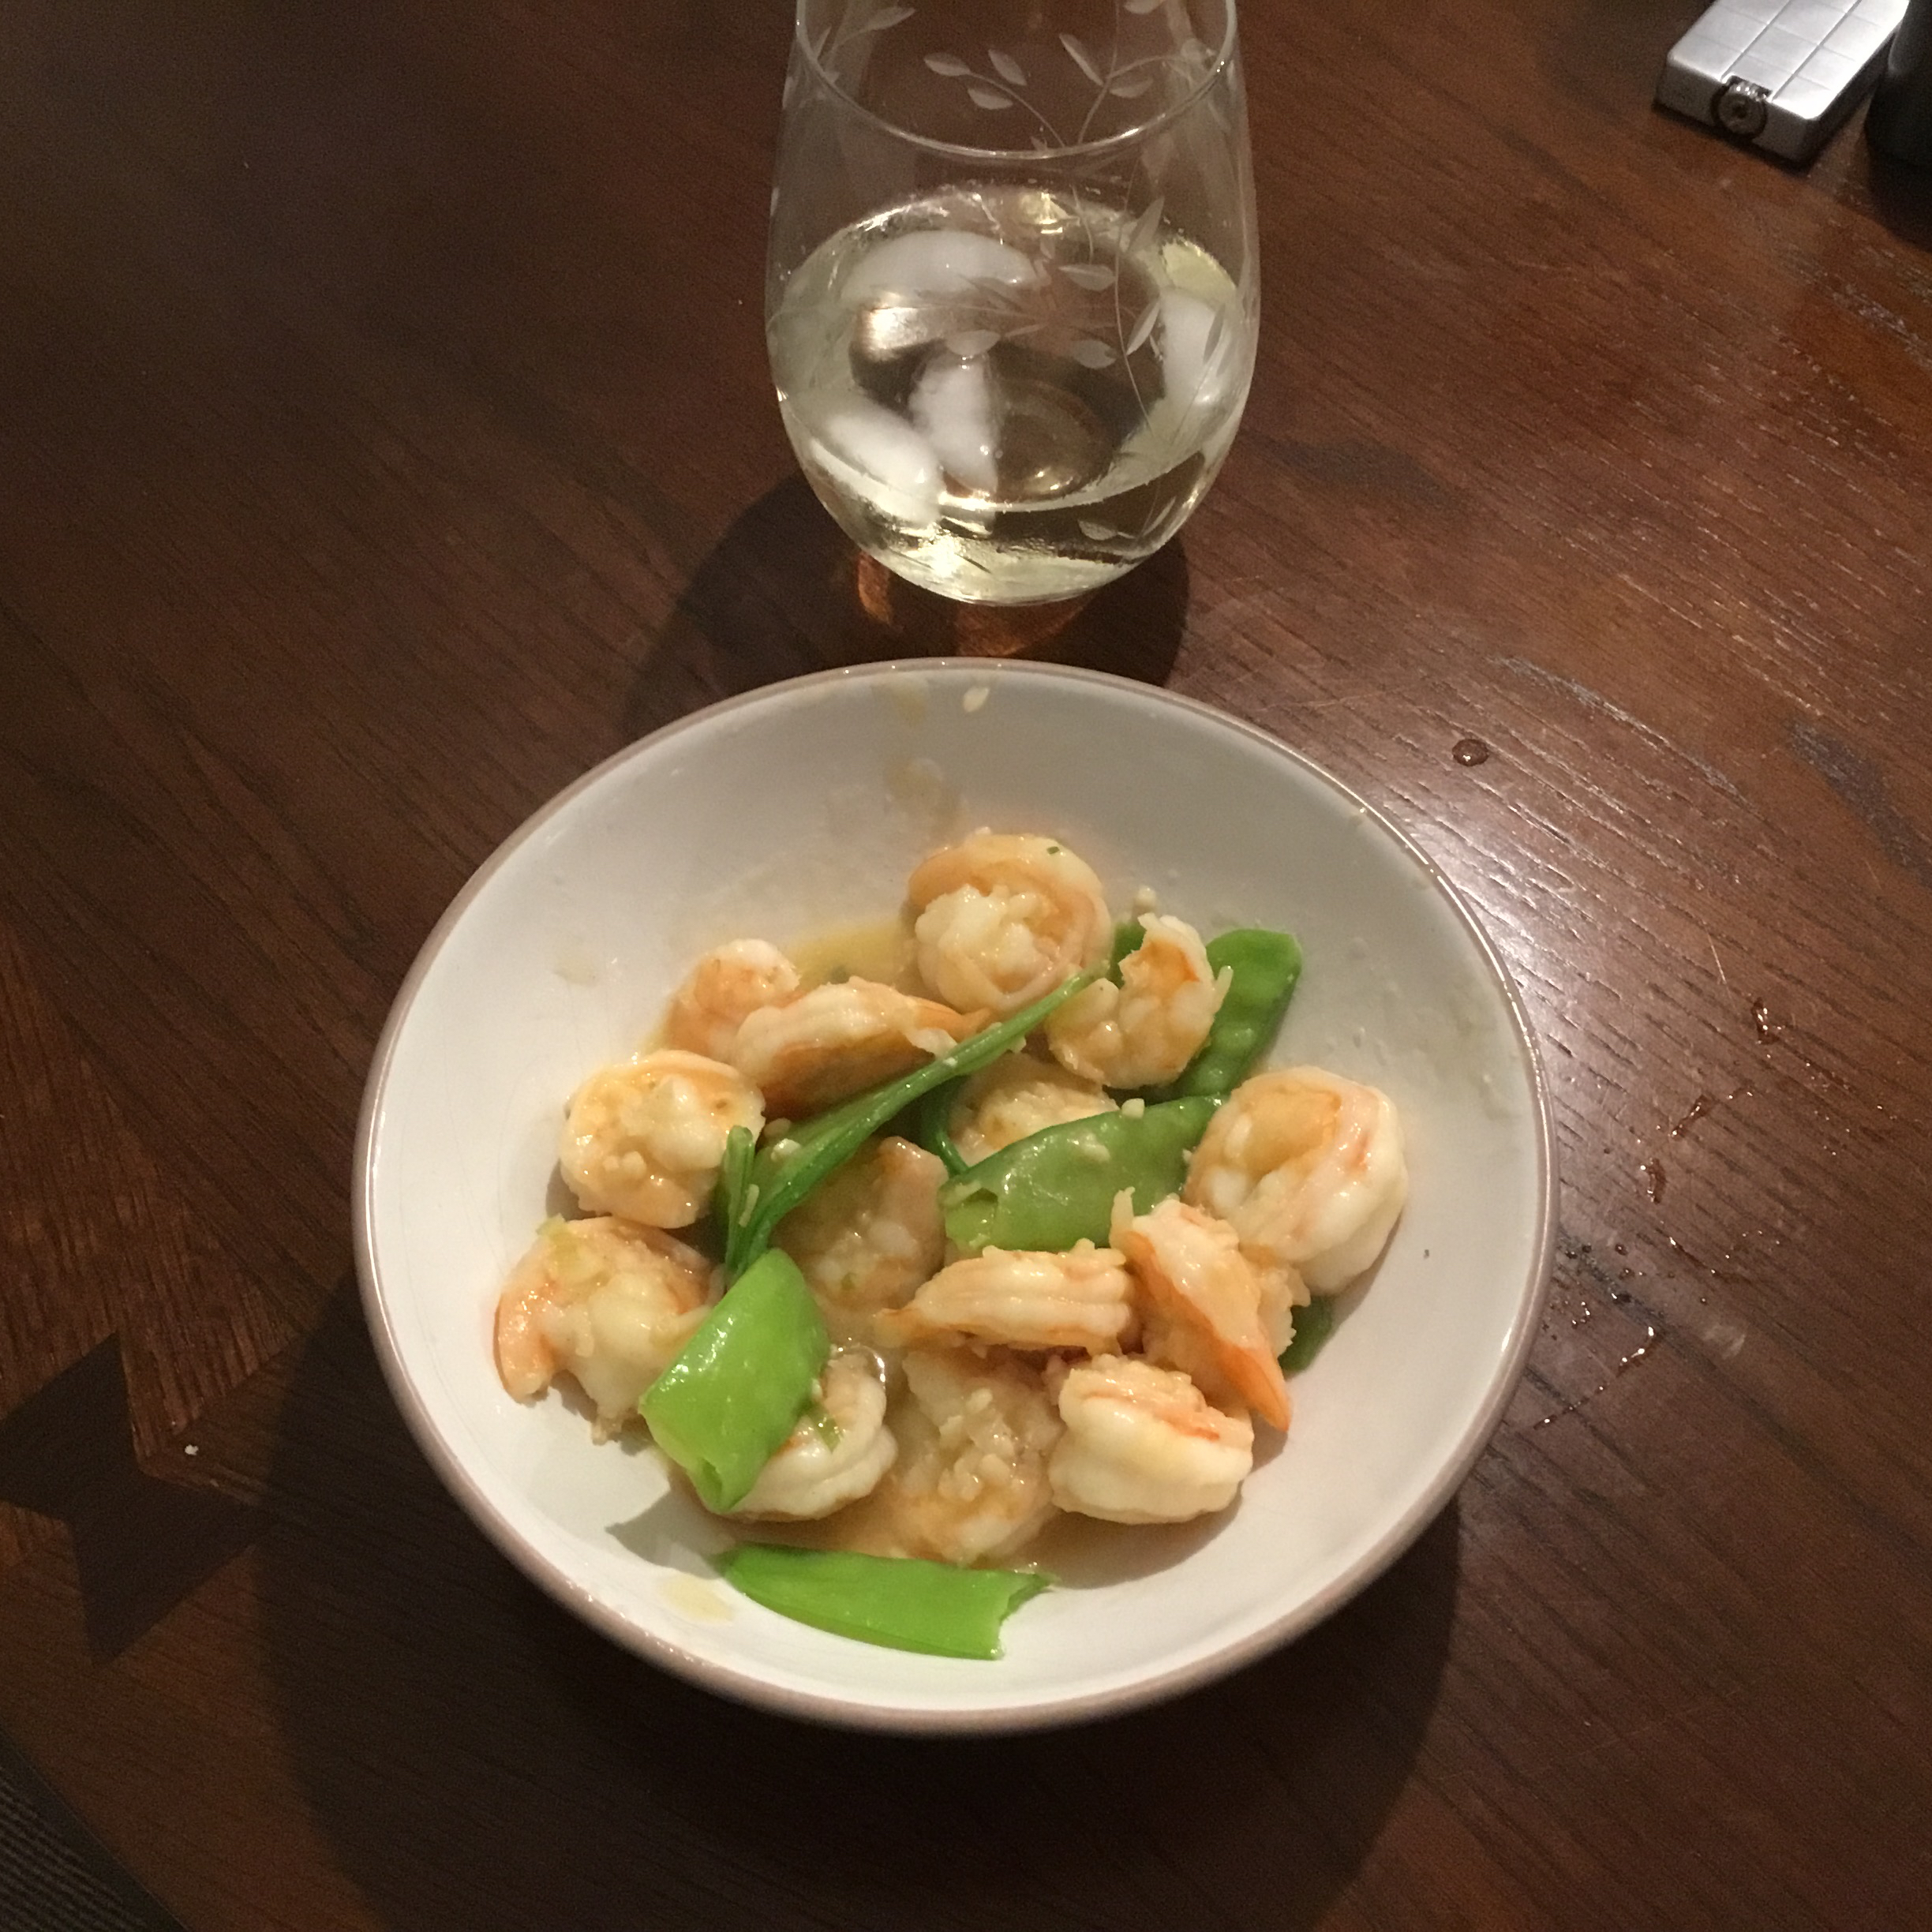 Stir-Fried Shrimp with Snow Peas and Ginger Smoothcwe